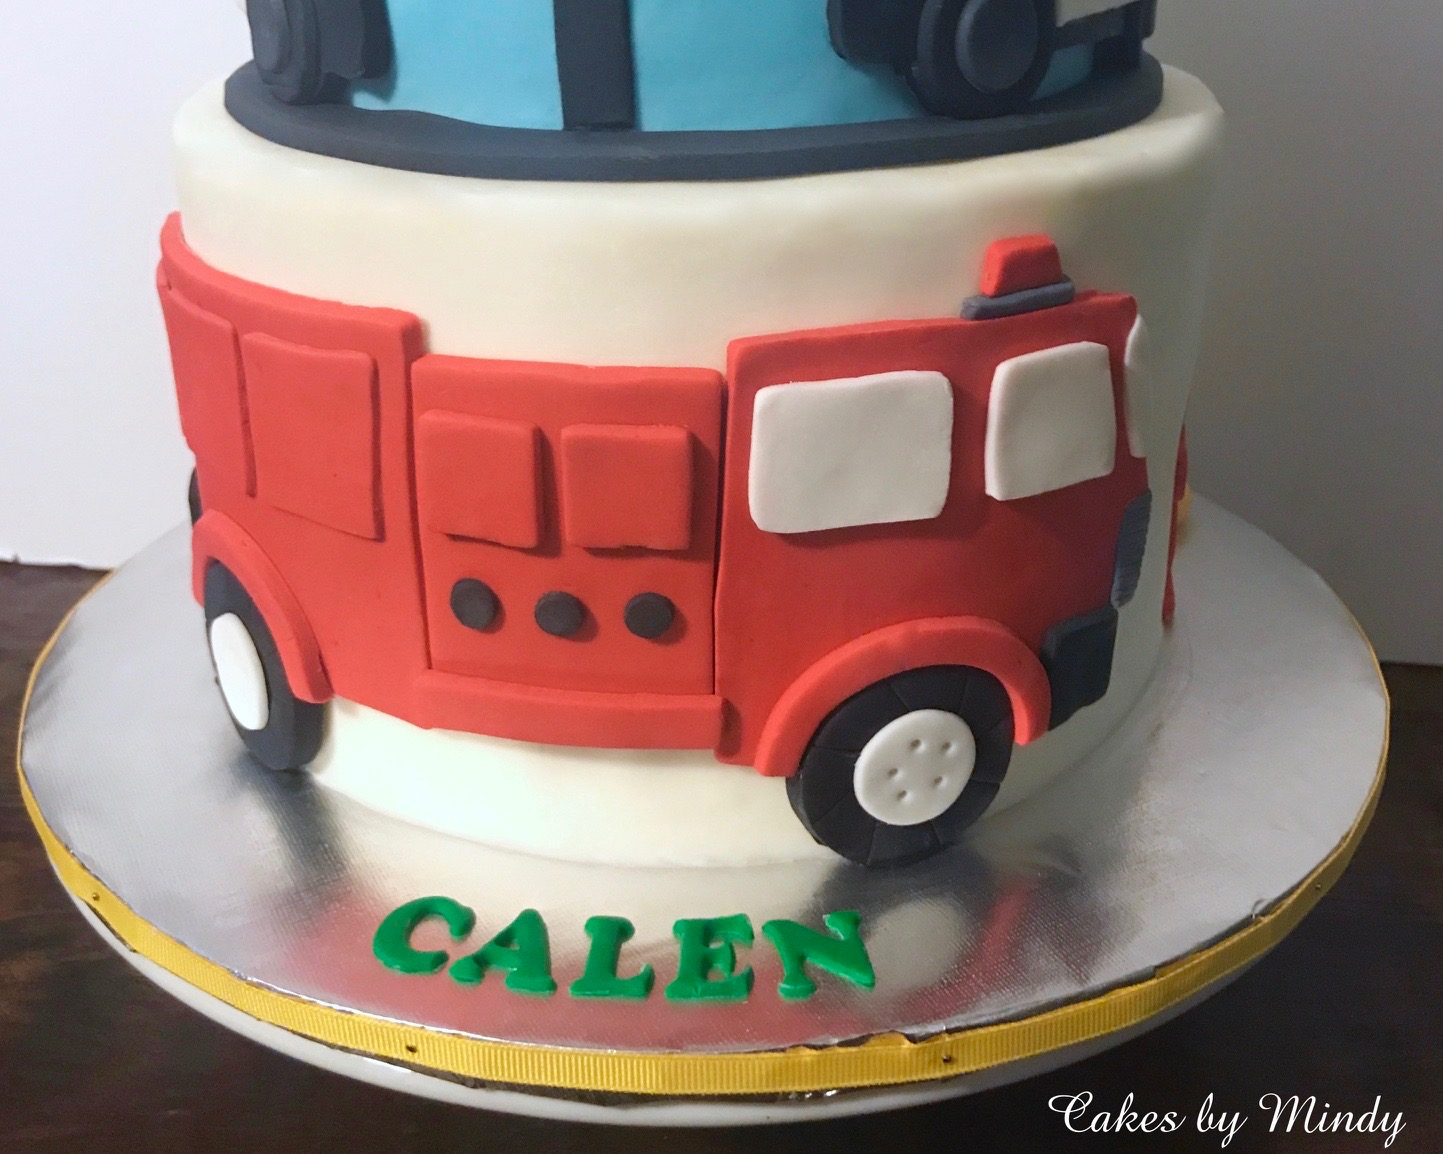 Enjoyable Cakes By Mindy Fire And Police Birthday Cake 6 8 Funny Birthday Cards Online Alyptdamsfinfo